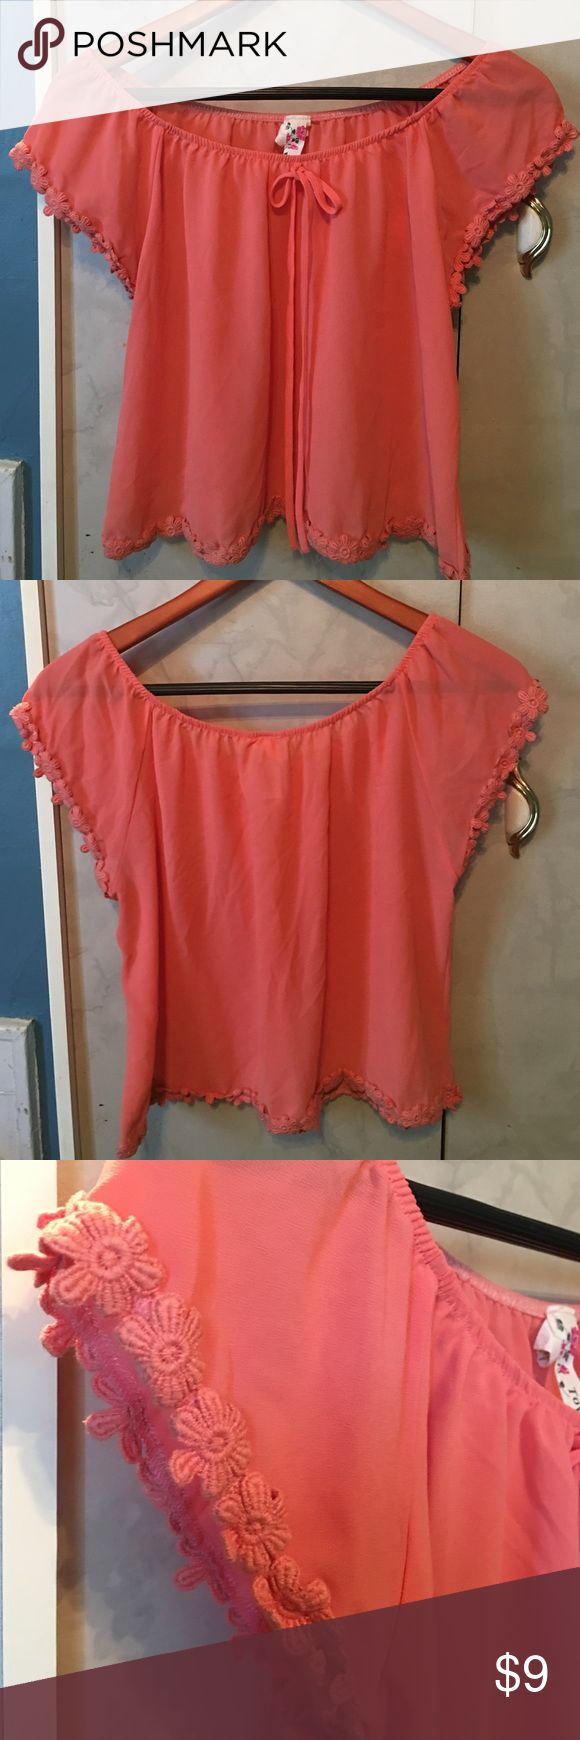 Pink/Peach Top Flowers on Hem and Sleeves . Worn a Few Times but well kept . Tops Crop Tops